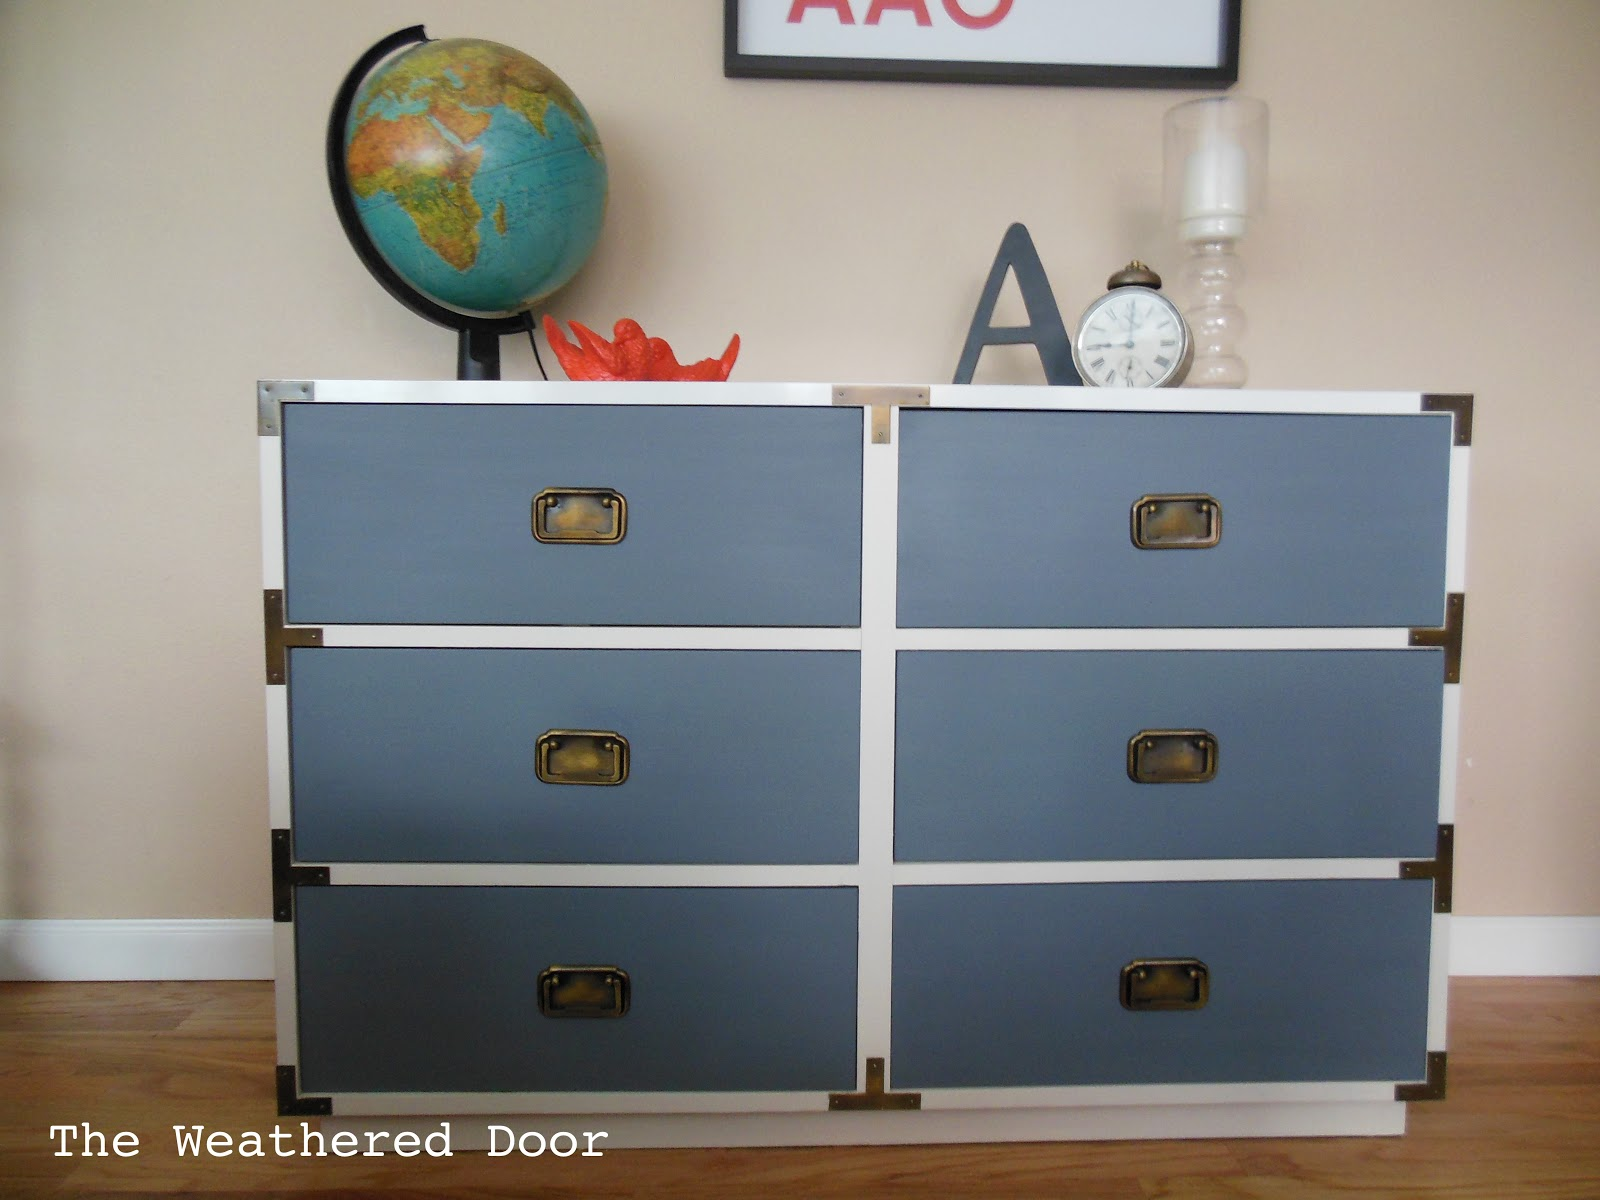 Beau ... Off That Hardware, Give The Drawers Some Red Paint, Then Pop The  Hardware Back On. I Could Change The Color Every Month If I Wanted To. Itu0027s  That Easy!